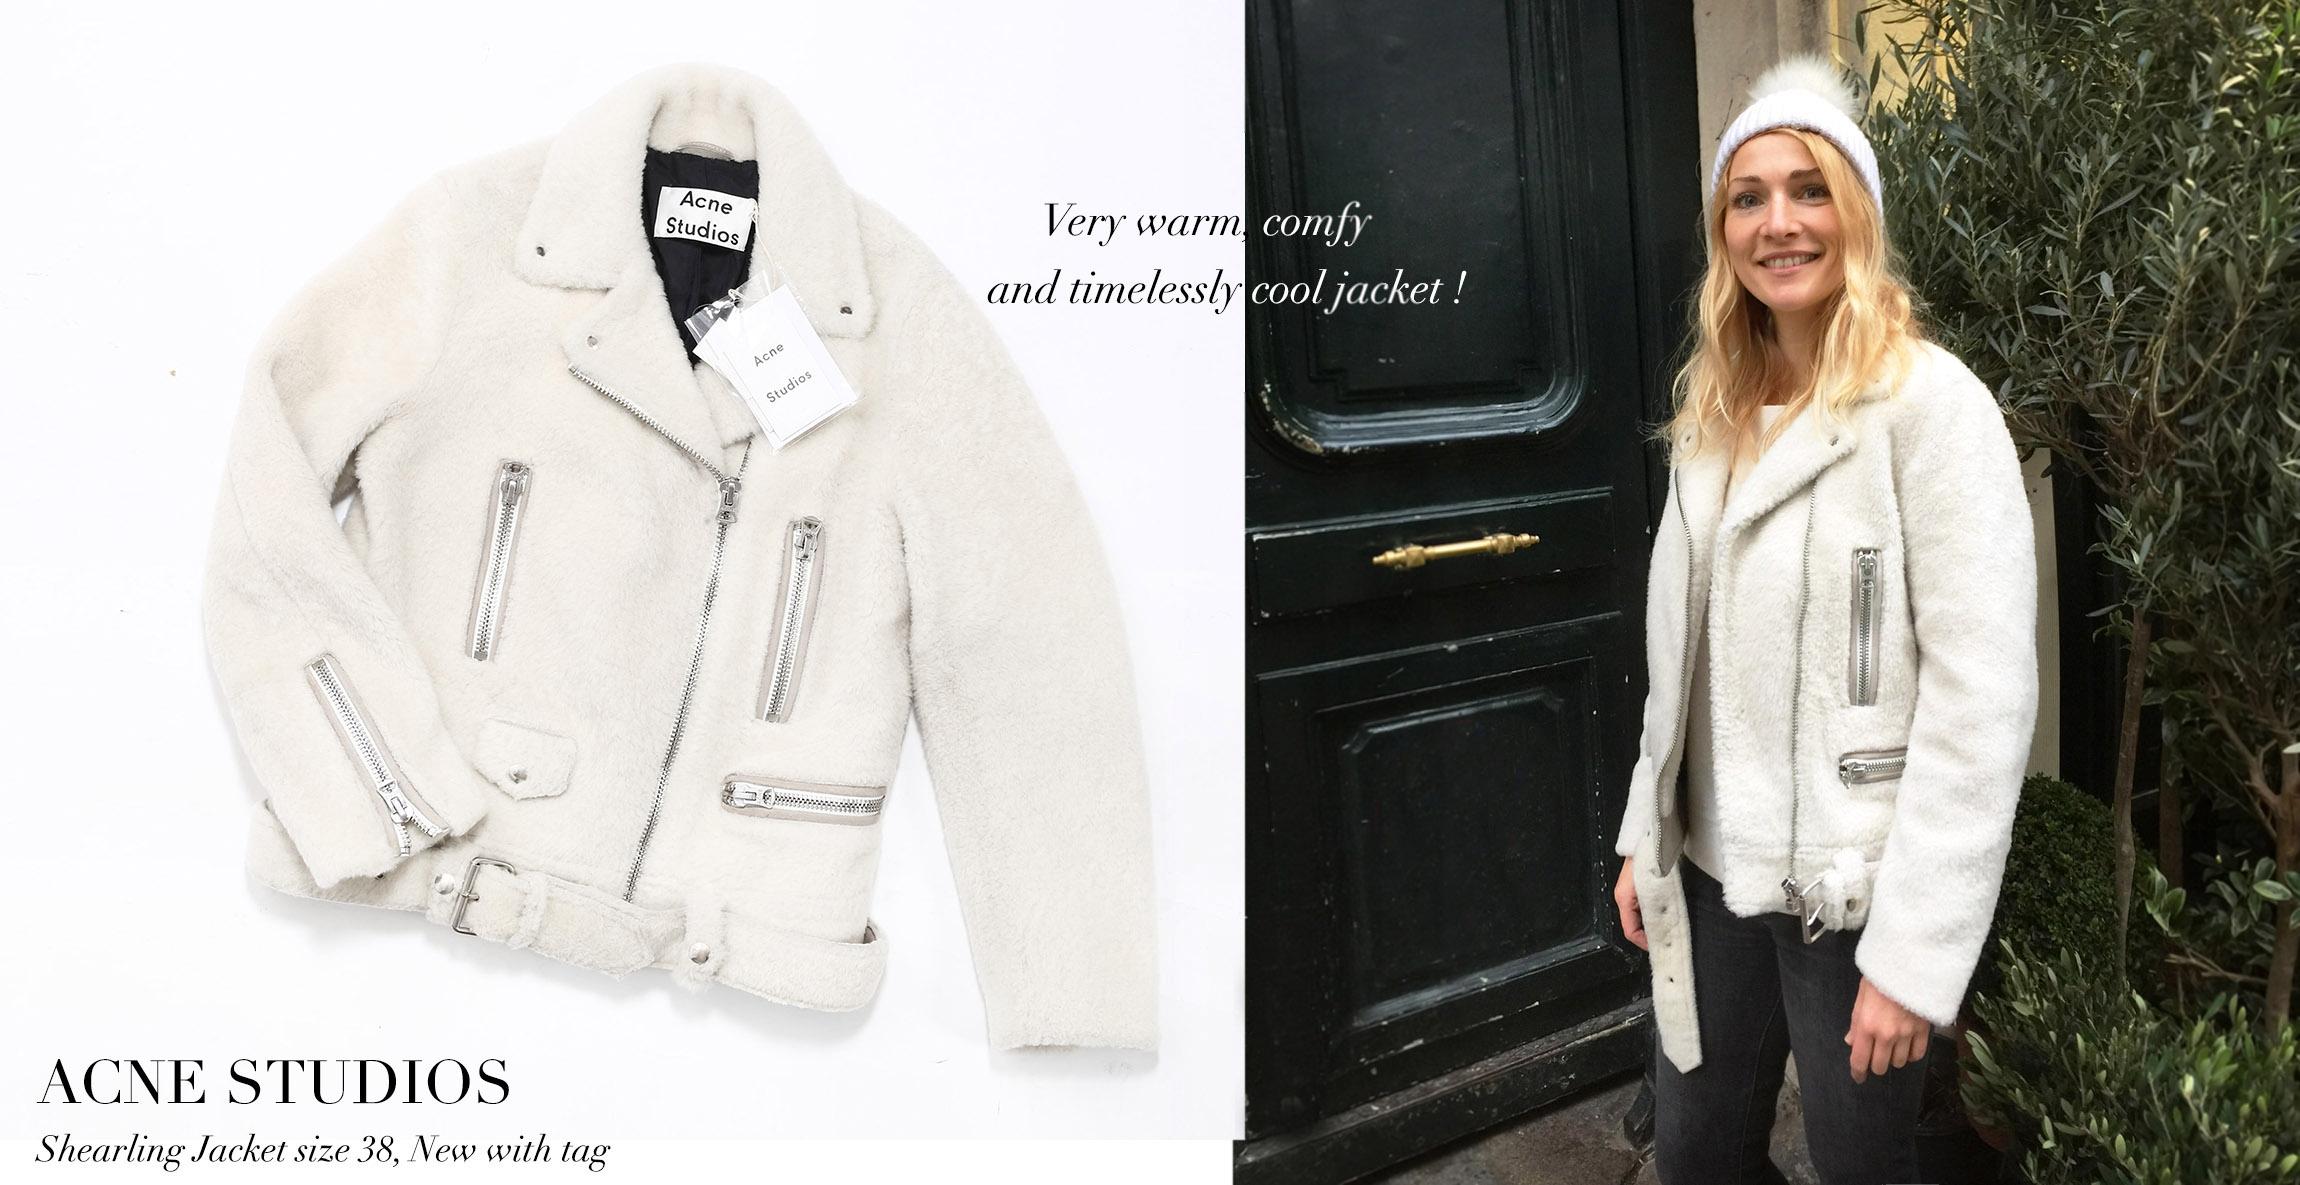 ACNE STUDIOS MERLYN Ivory white mock felted shearling jacket Retail price €1900 Size 38